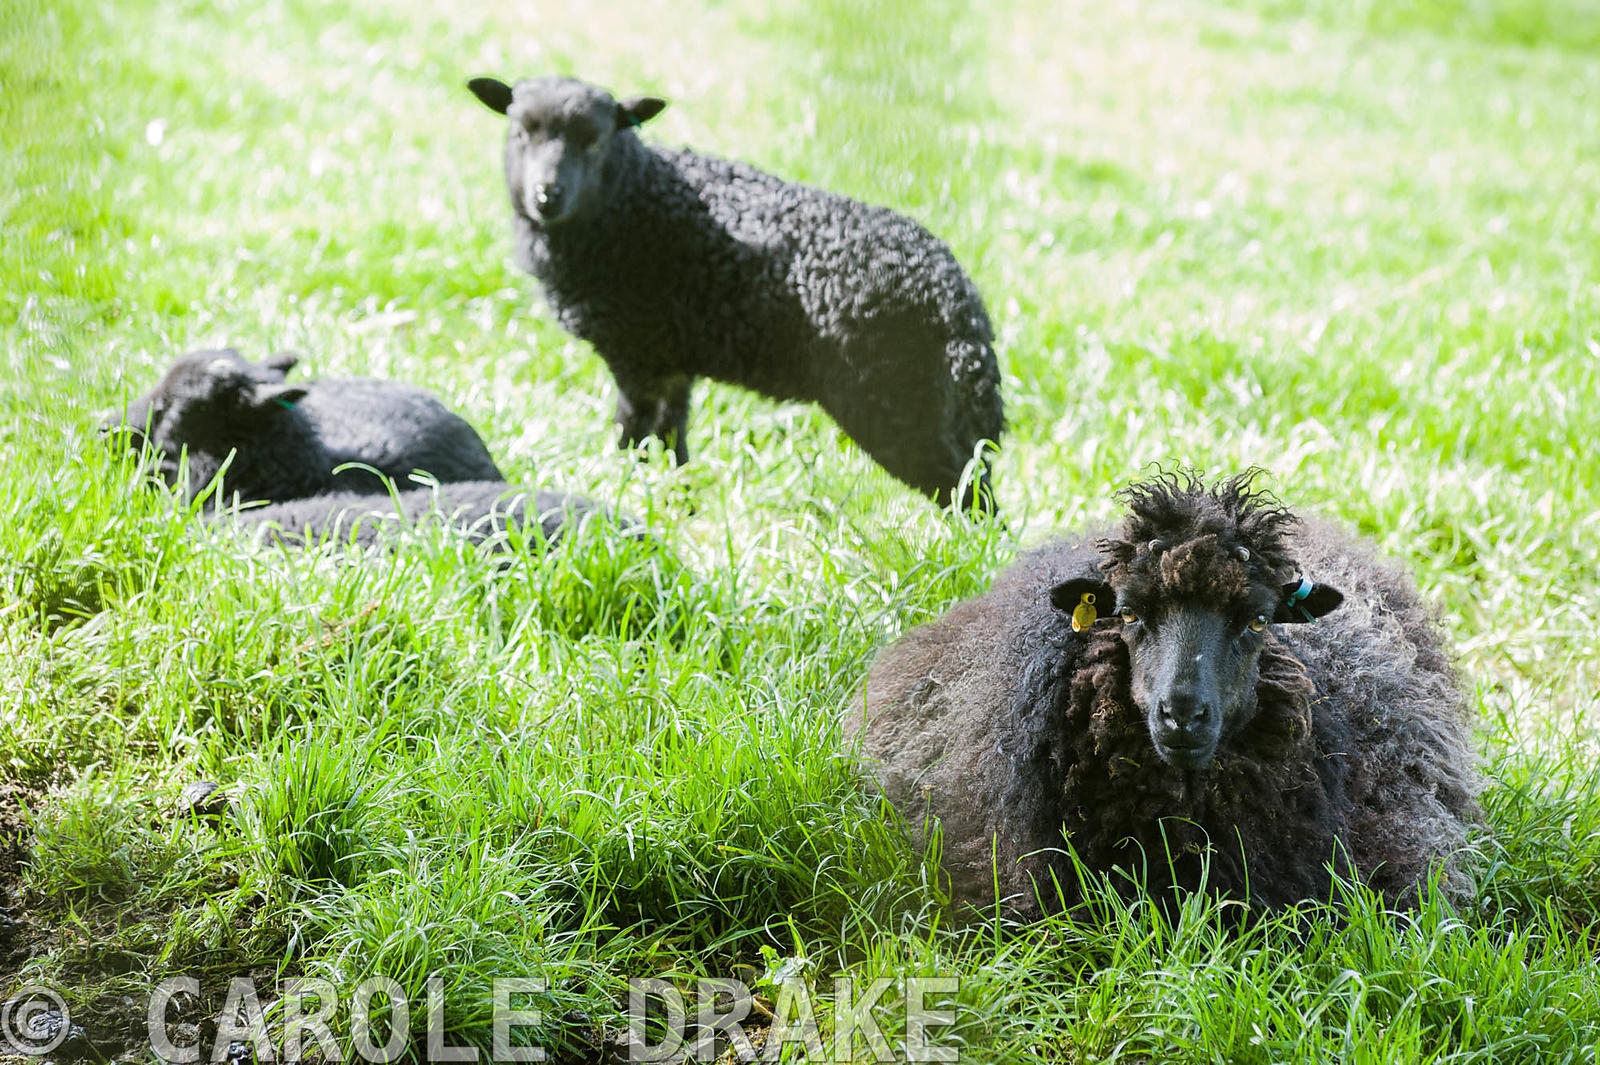 Hebridean sheep with lambs in a field adjoining the garden. Windy Hall, Windermere, Cumbria, UK